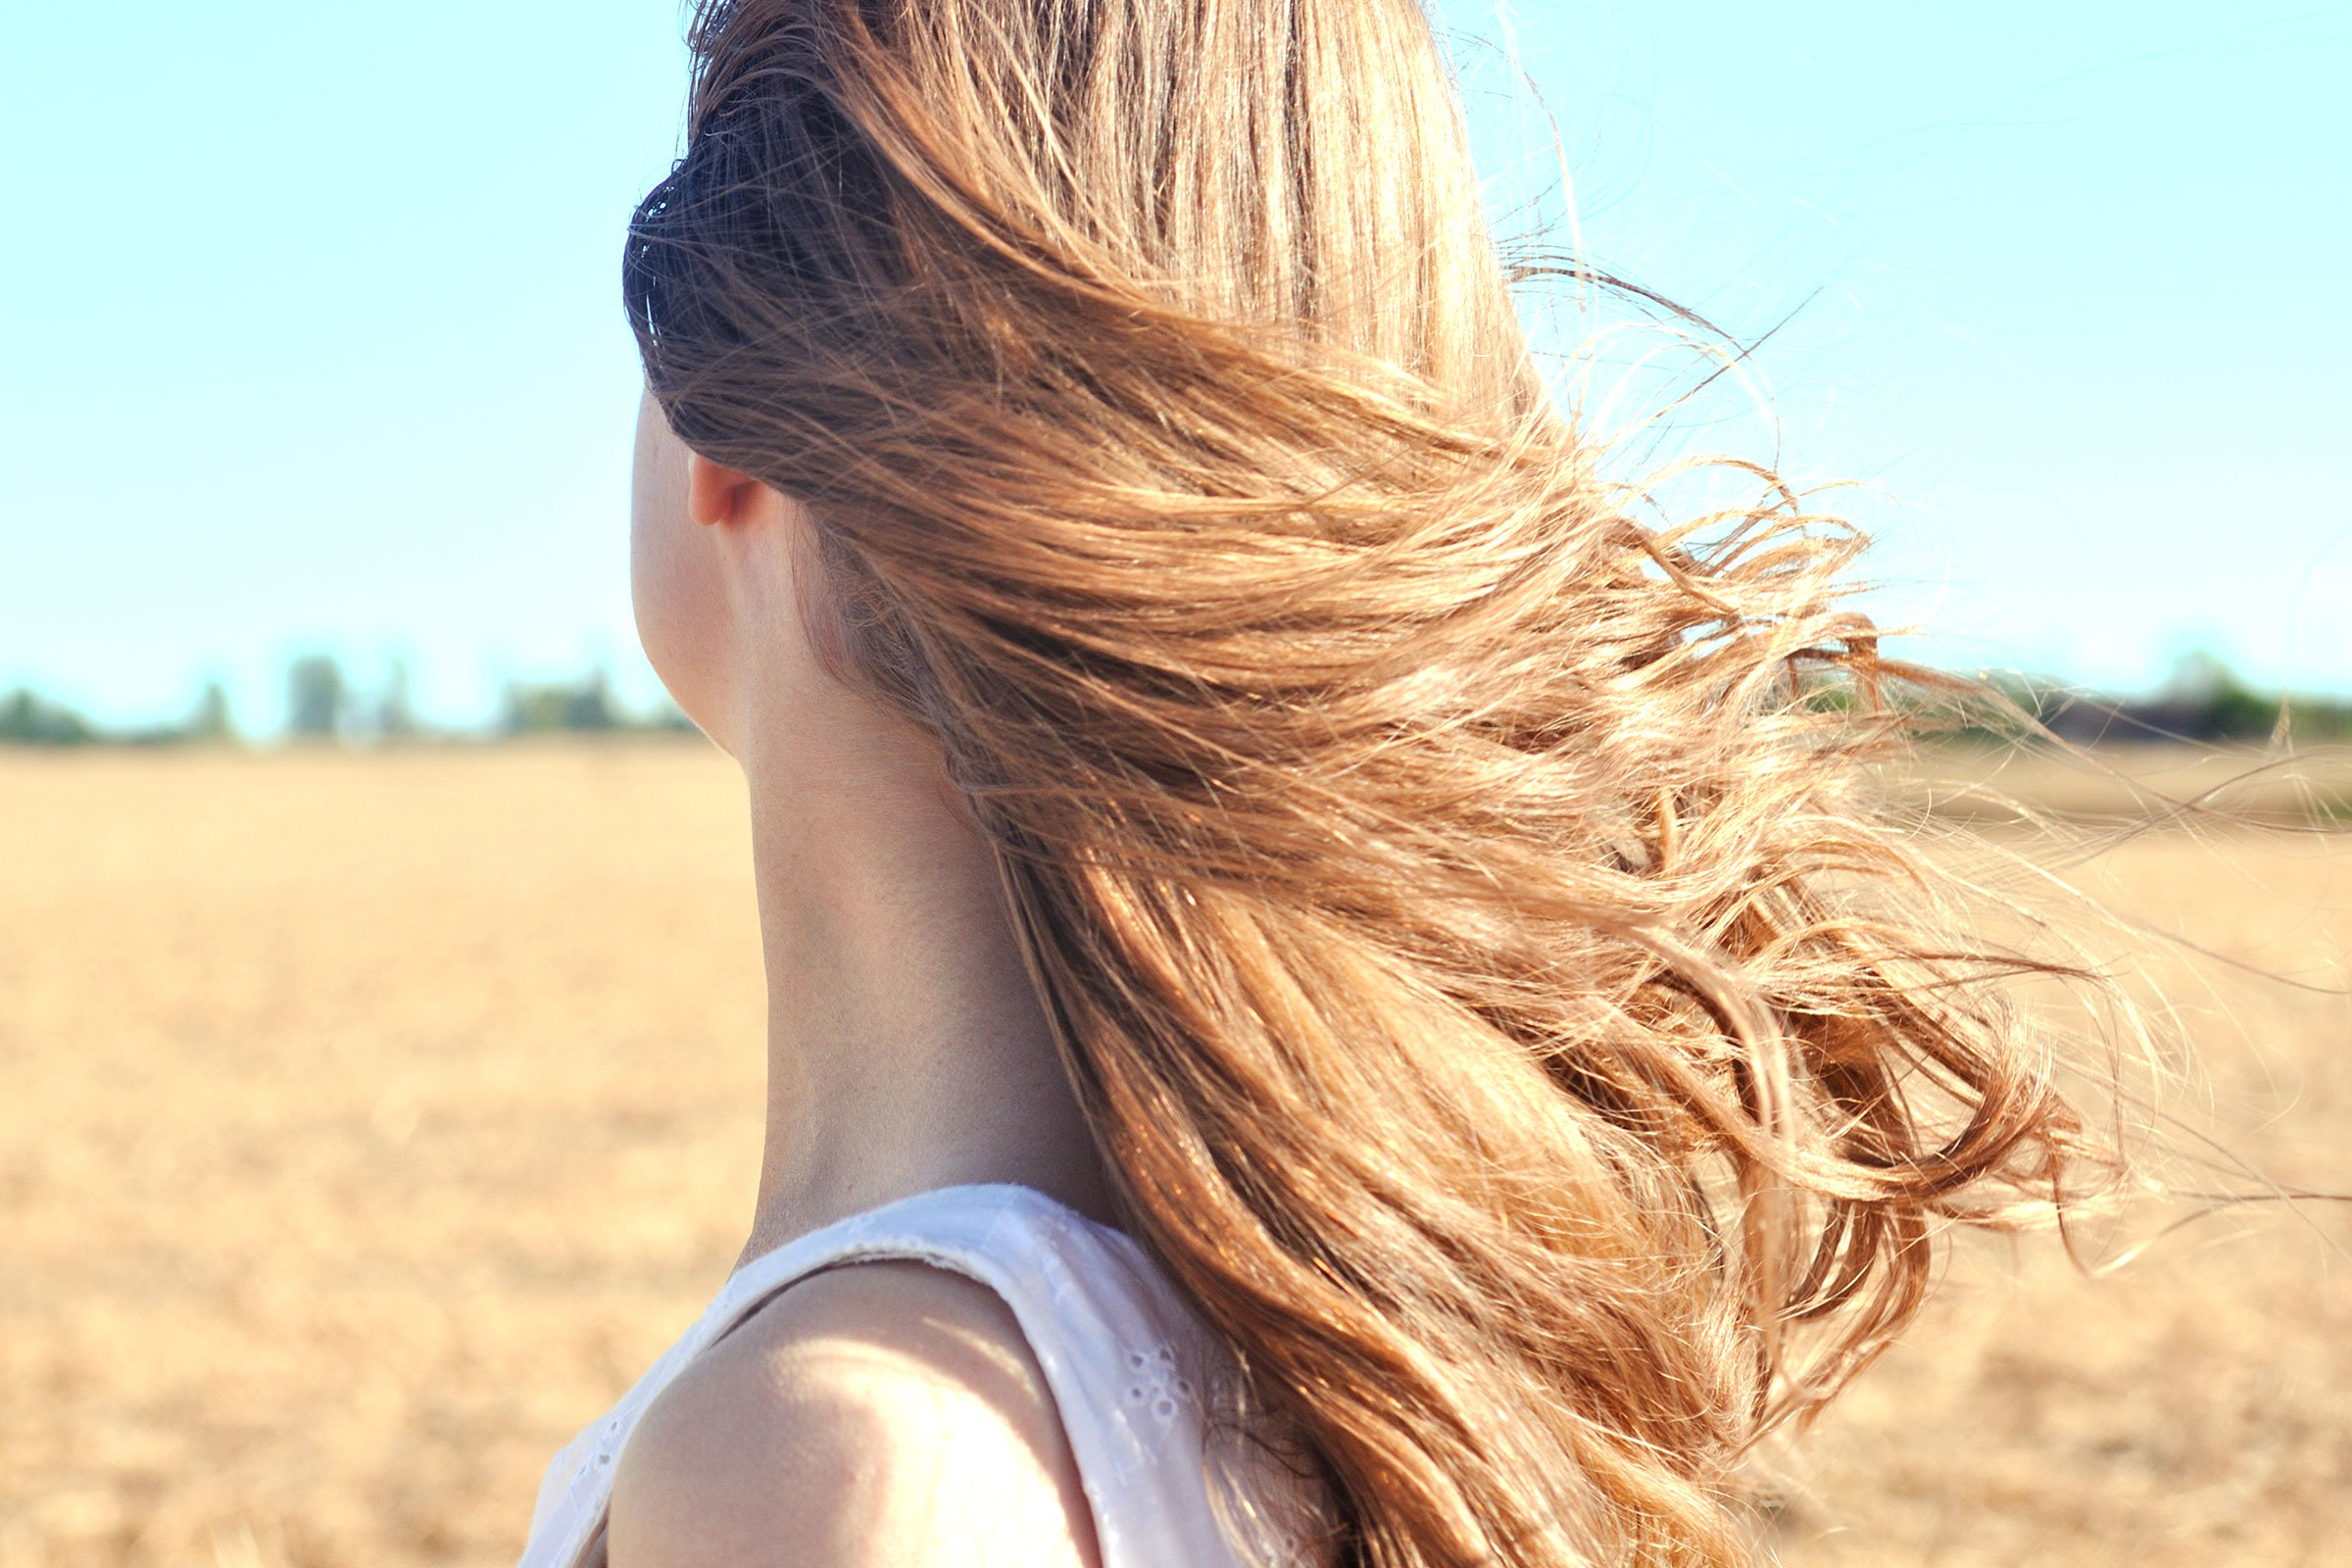 07-thick-The-Secrets-for-Air-Drying-Your-Hair-So-It-Still-Looks-Awesome-487241680_Jurgute.jpg